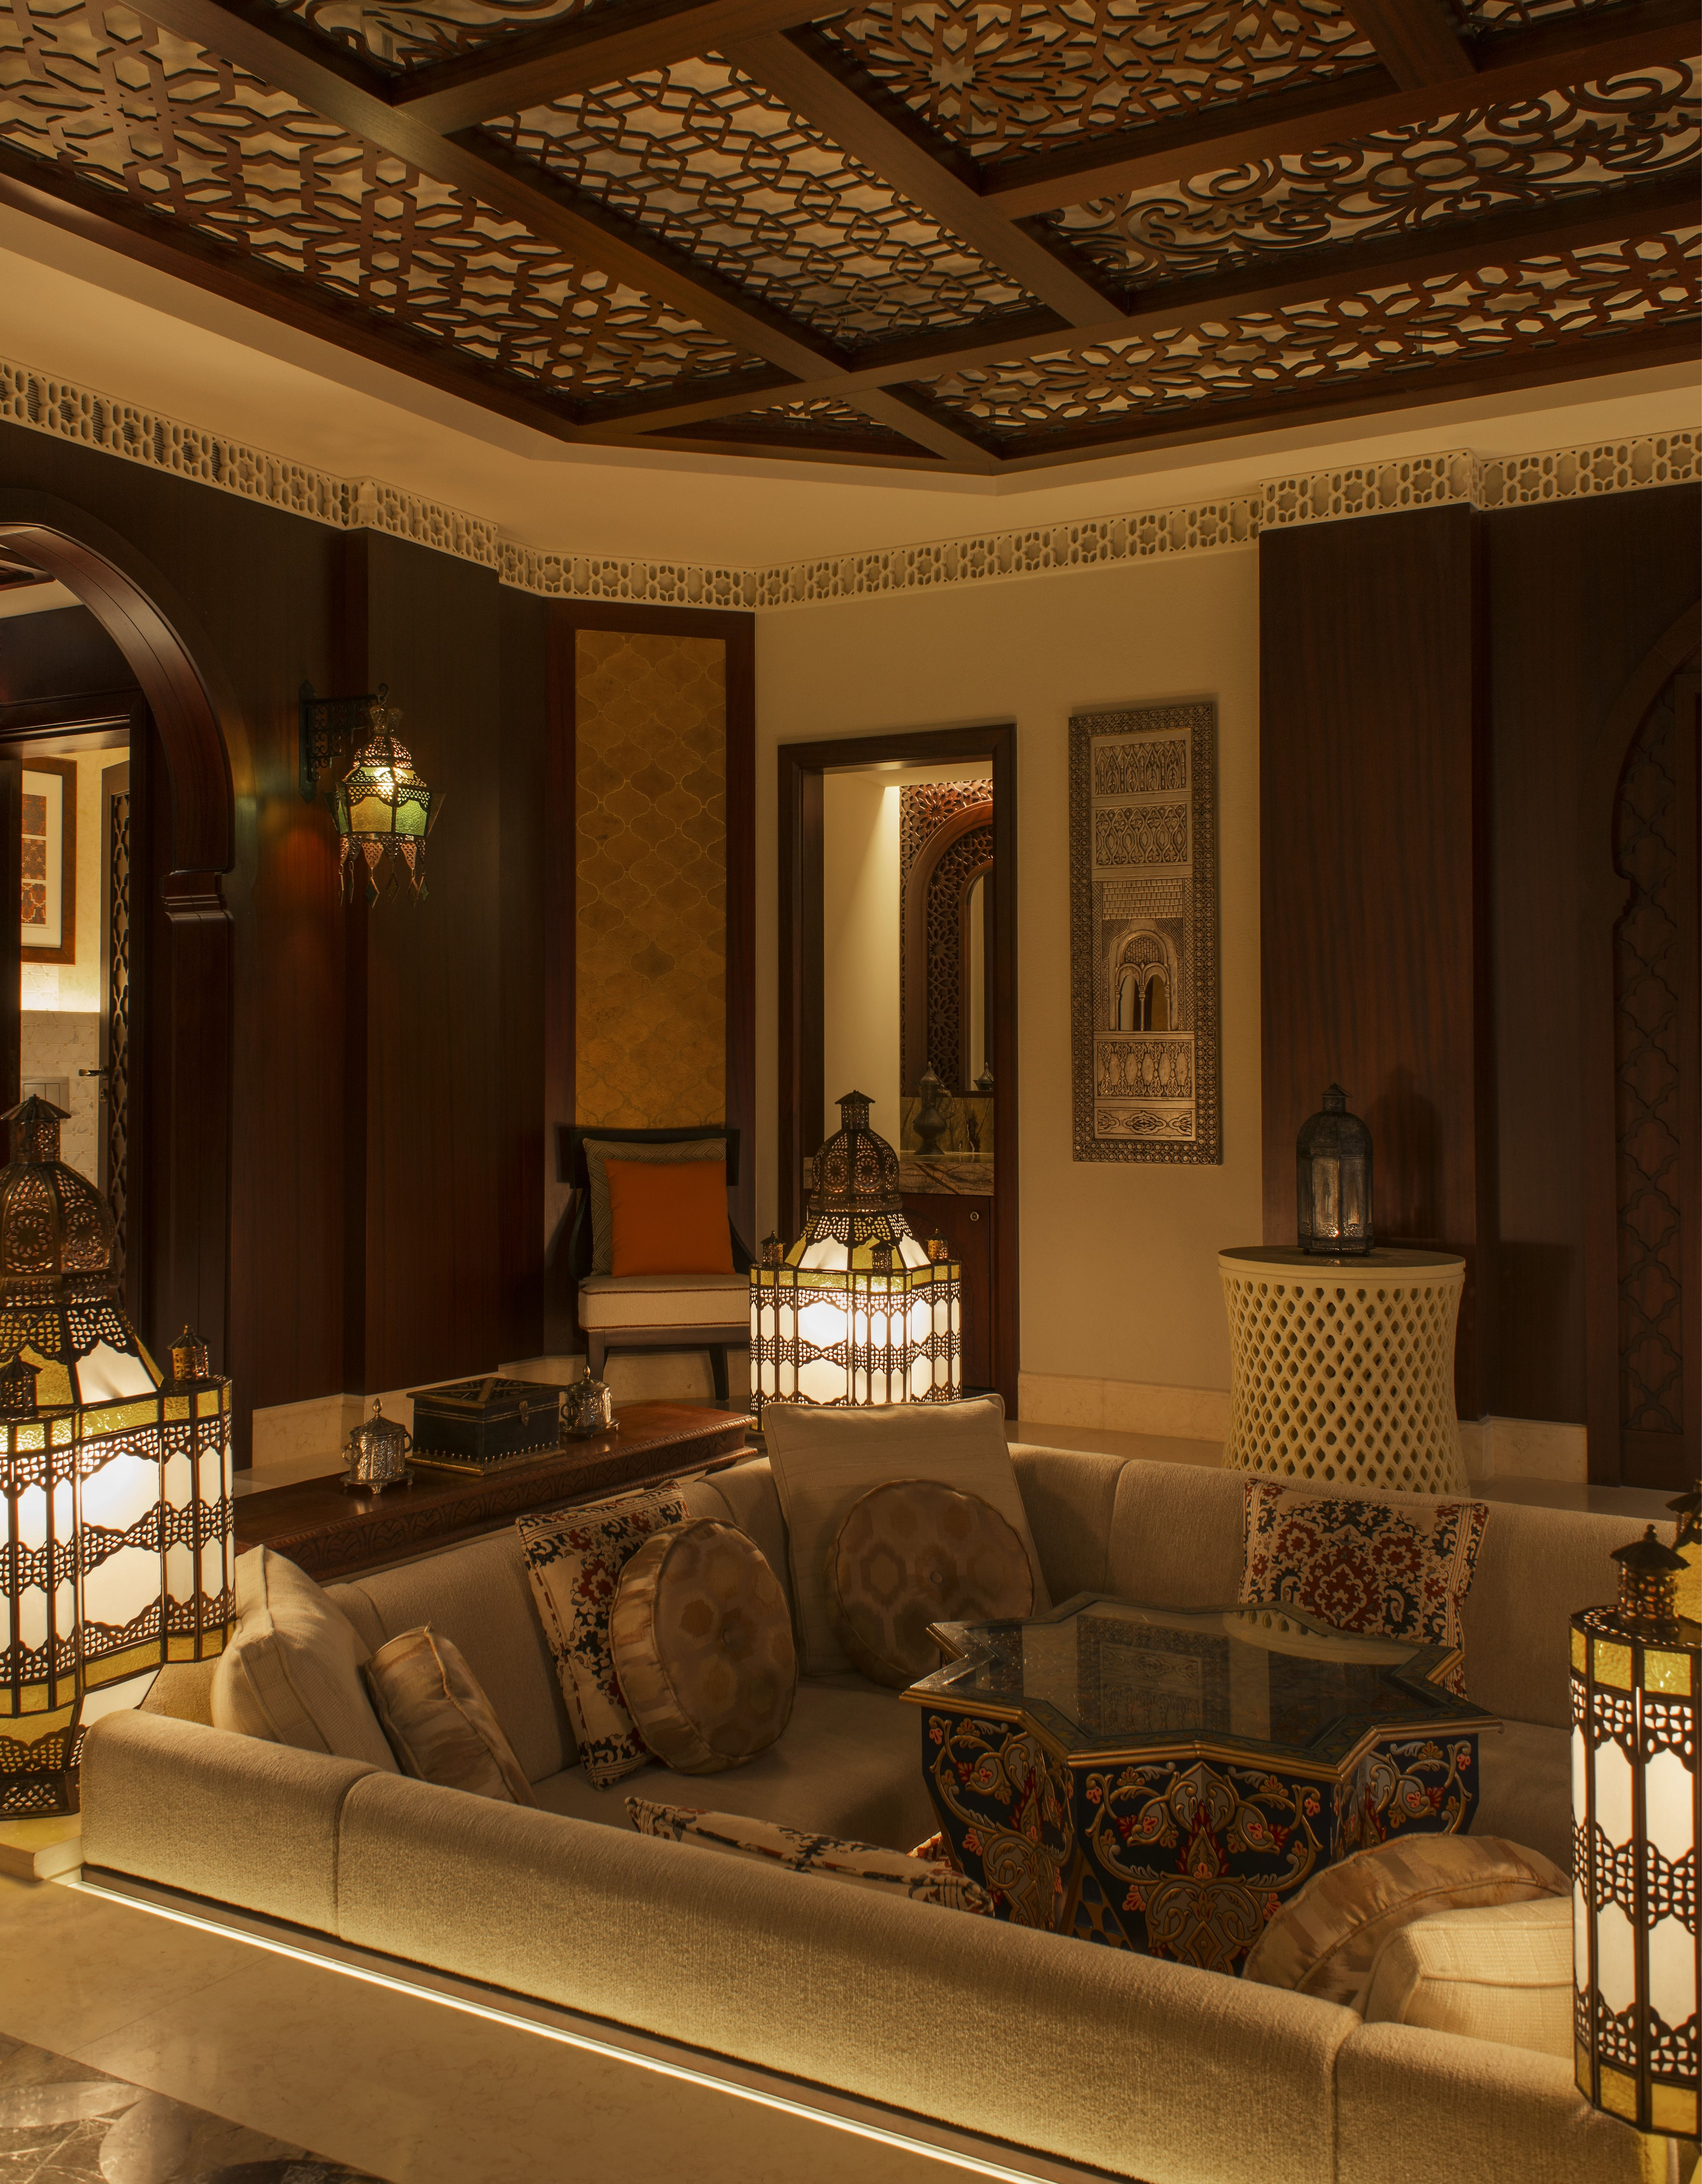 Living room decorating ideas on a budget moroccan suite - Interior design ideas on a budget ...